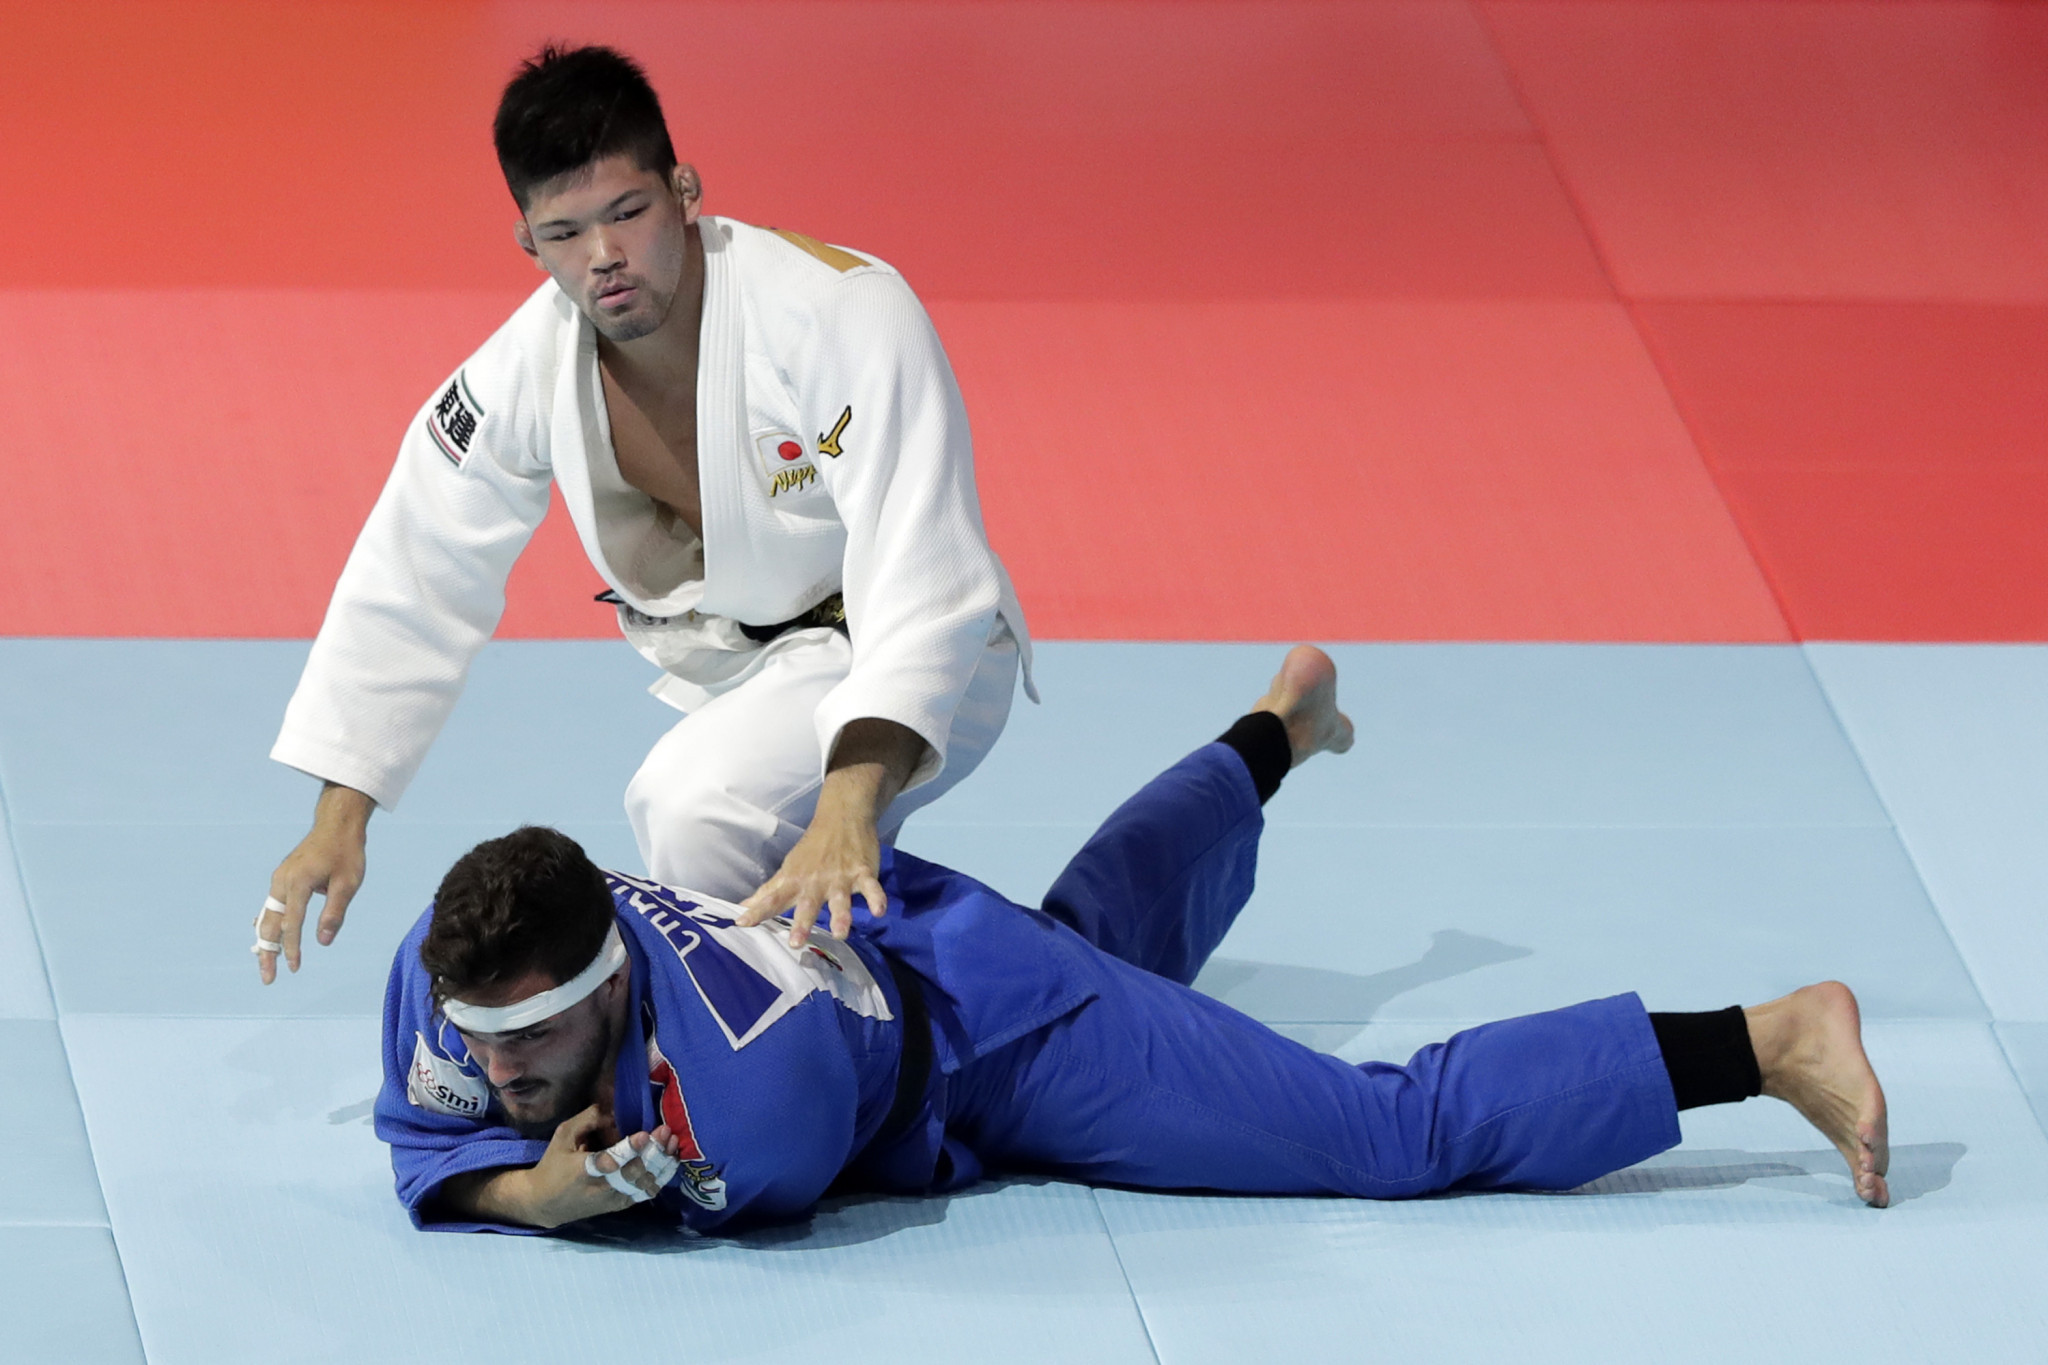 Ono Shohei will be among the Japanese world champions competing at the event ©Getty Images